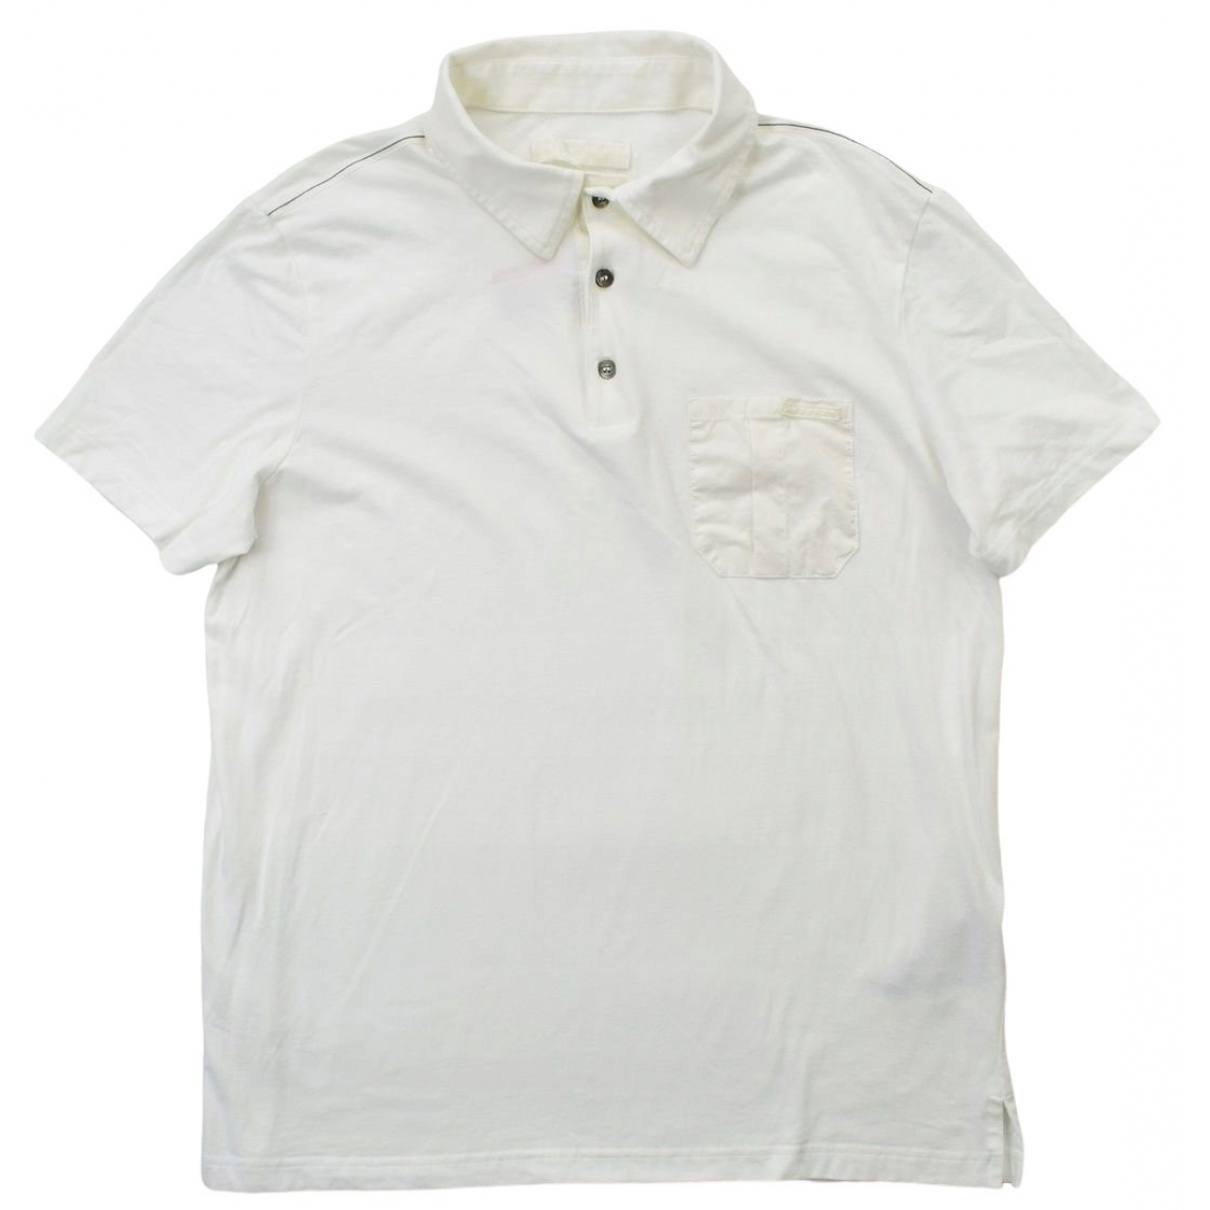 Prada \N Poloshirts in  Weiss Baumwolle